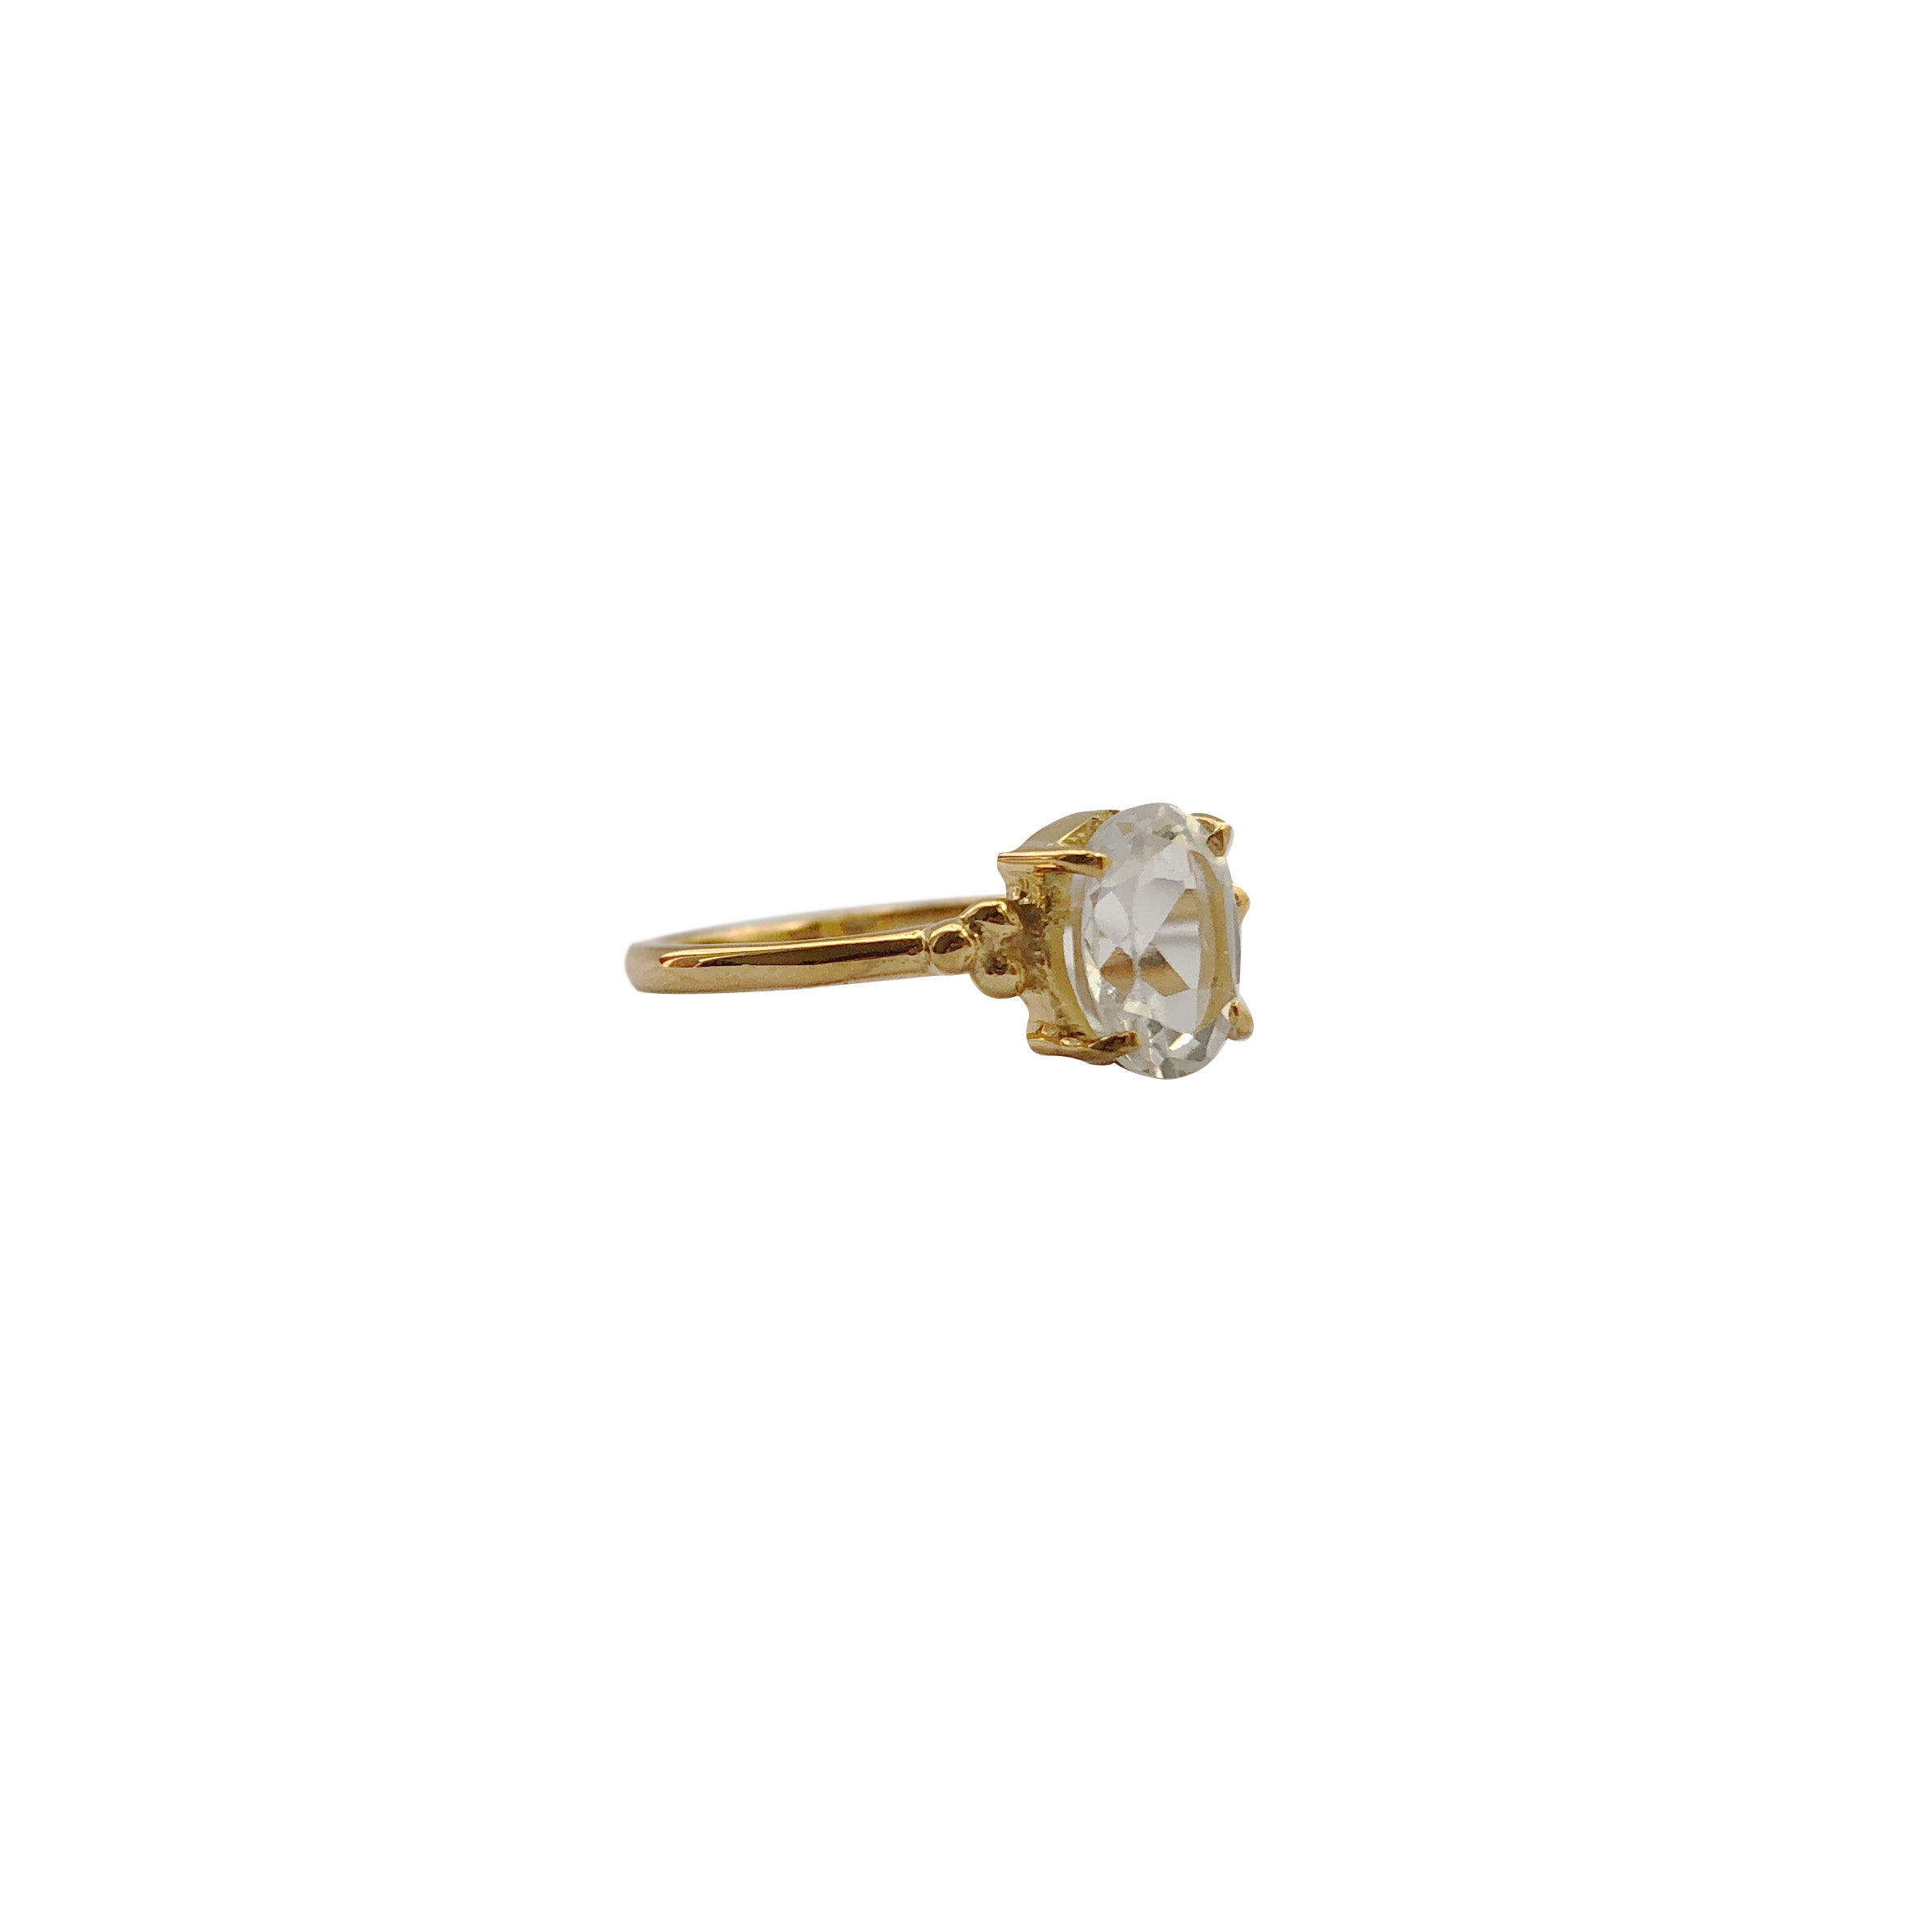 Tulang Solitaire with White Topaz